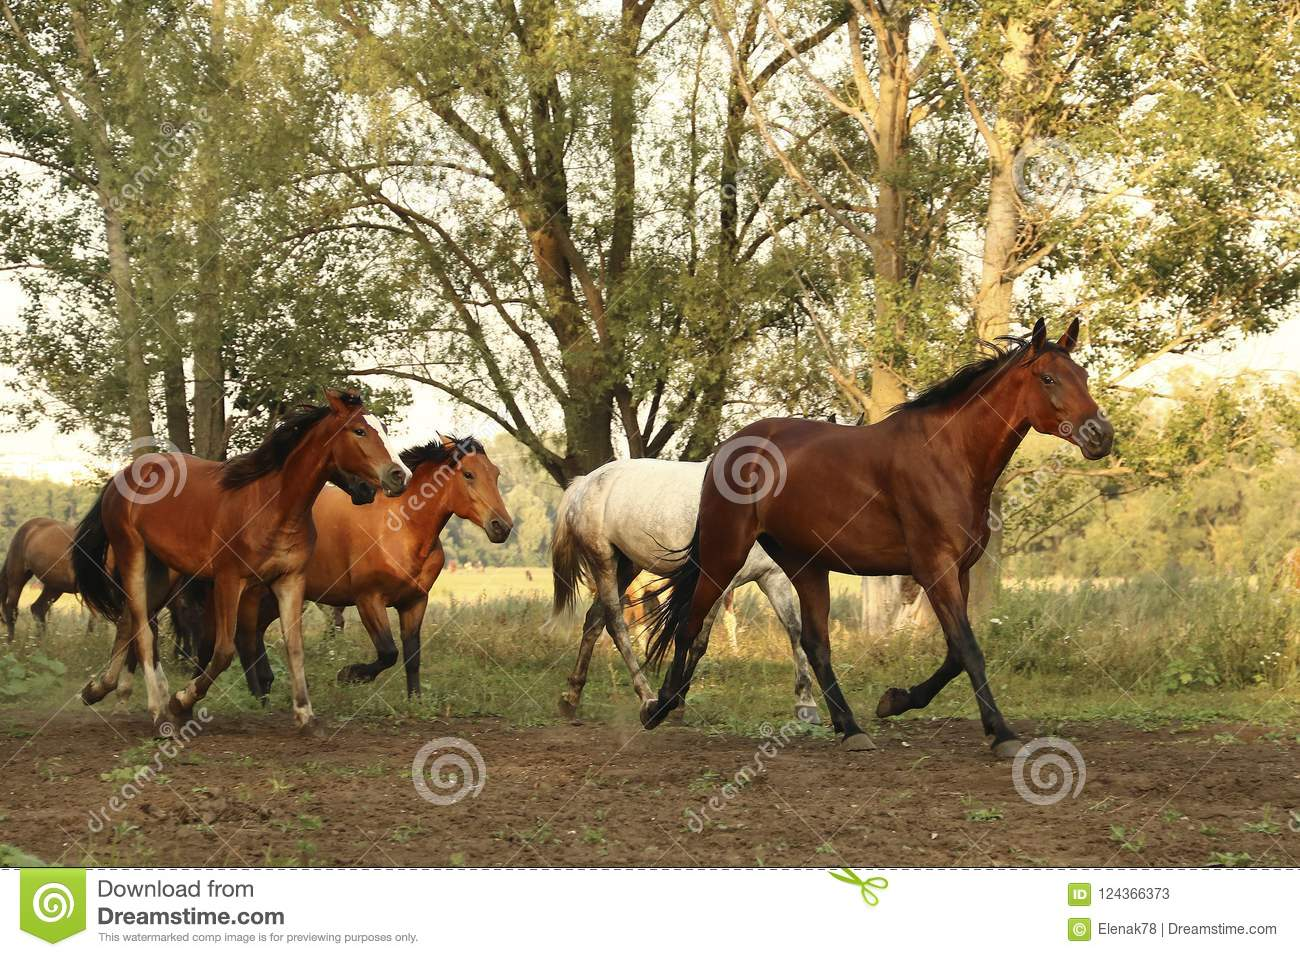 Group of wild horses running across the field